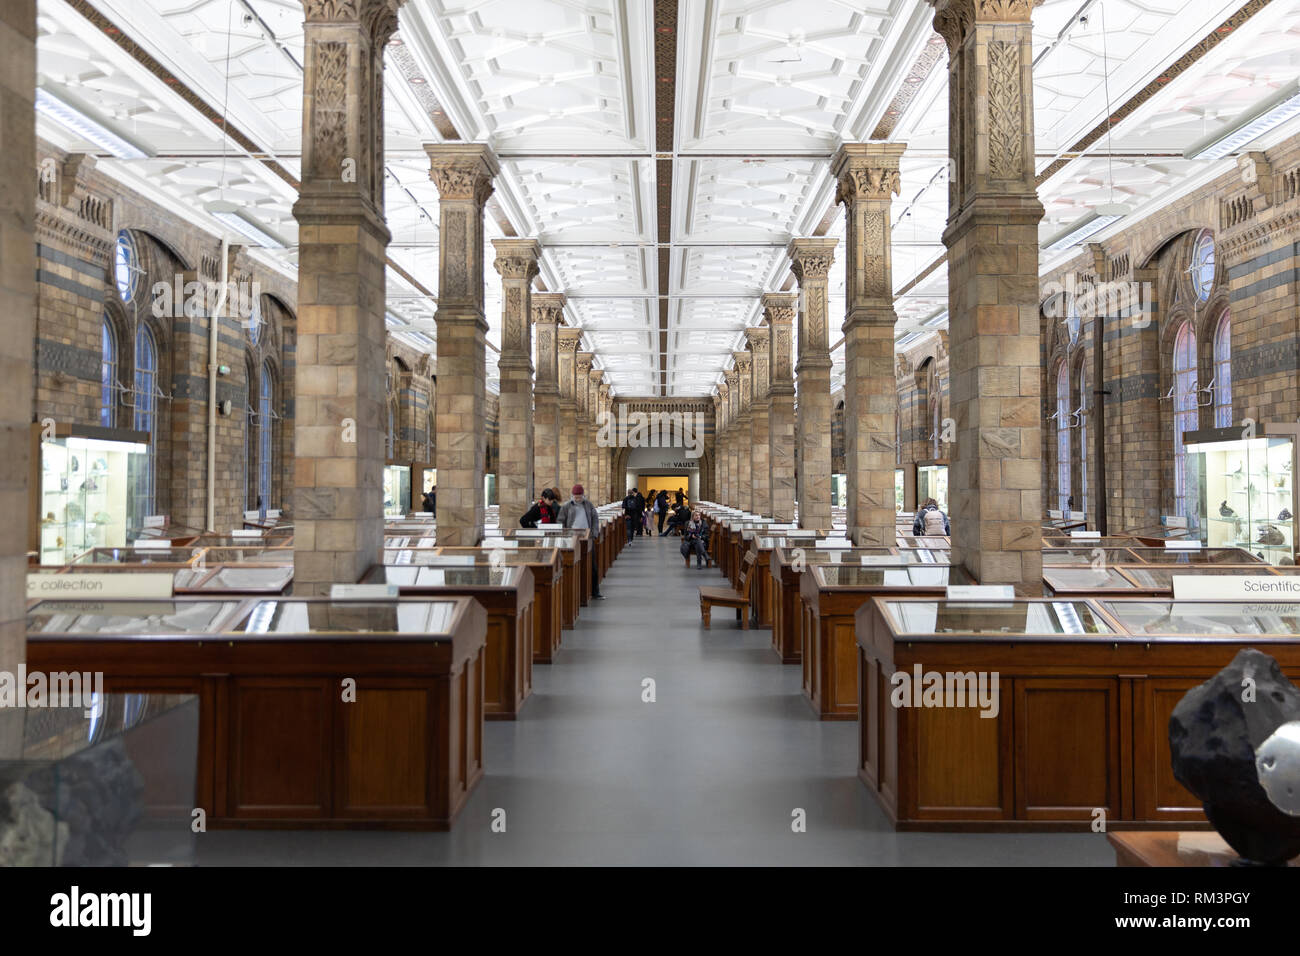 Le prix des minéraux au Natural History Museum, London, UK Photo Stock